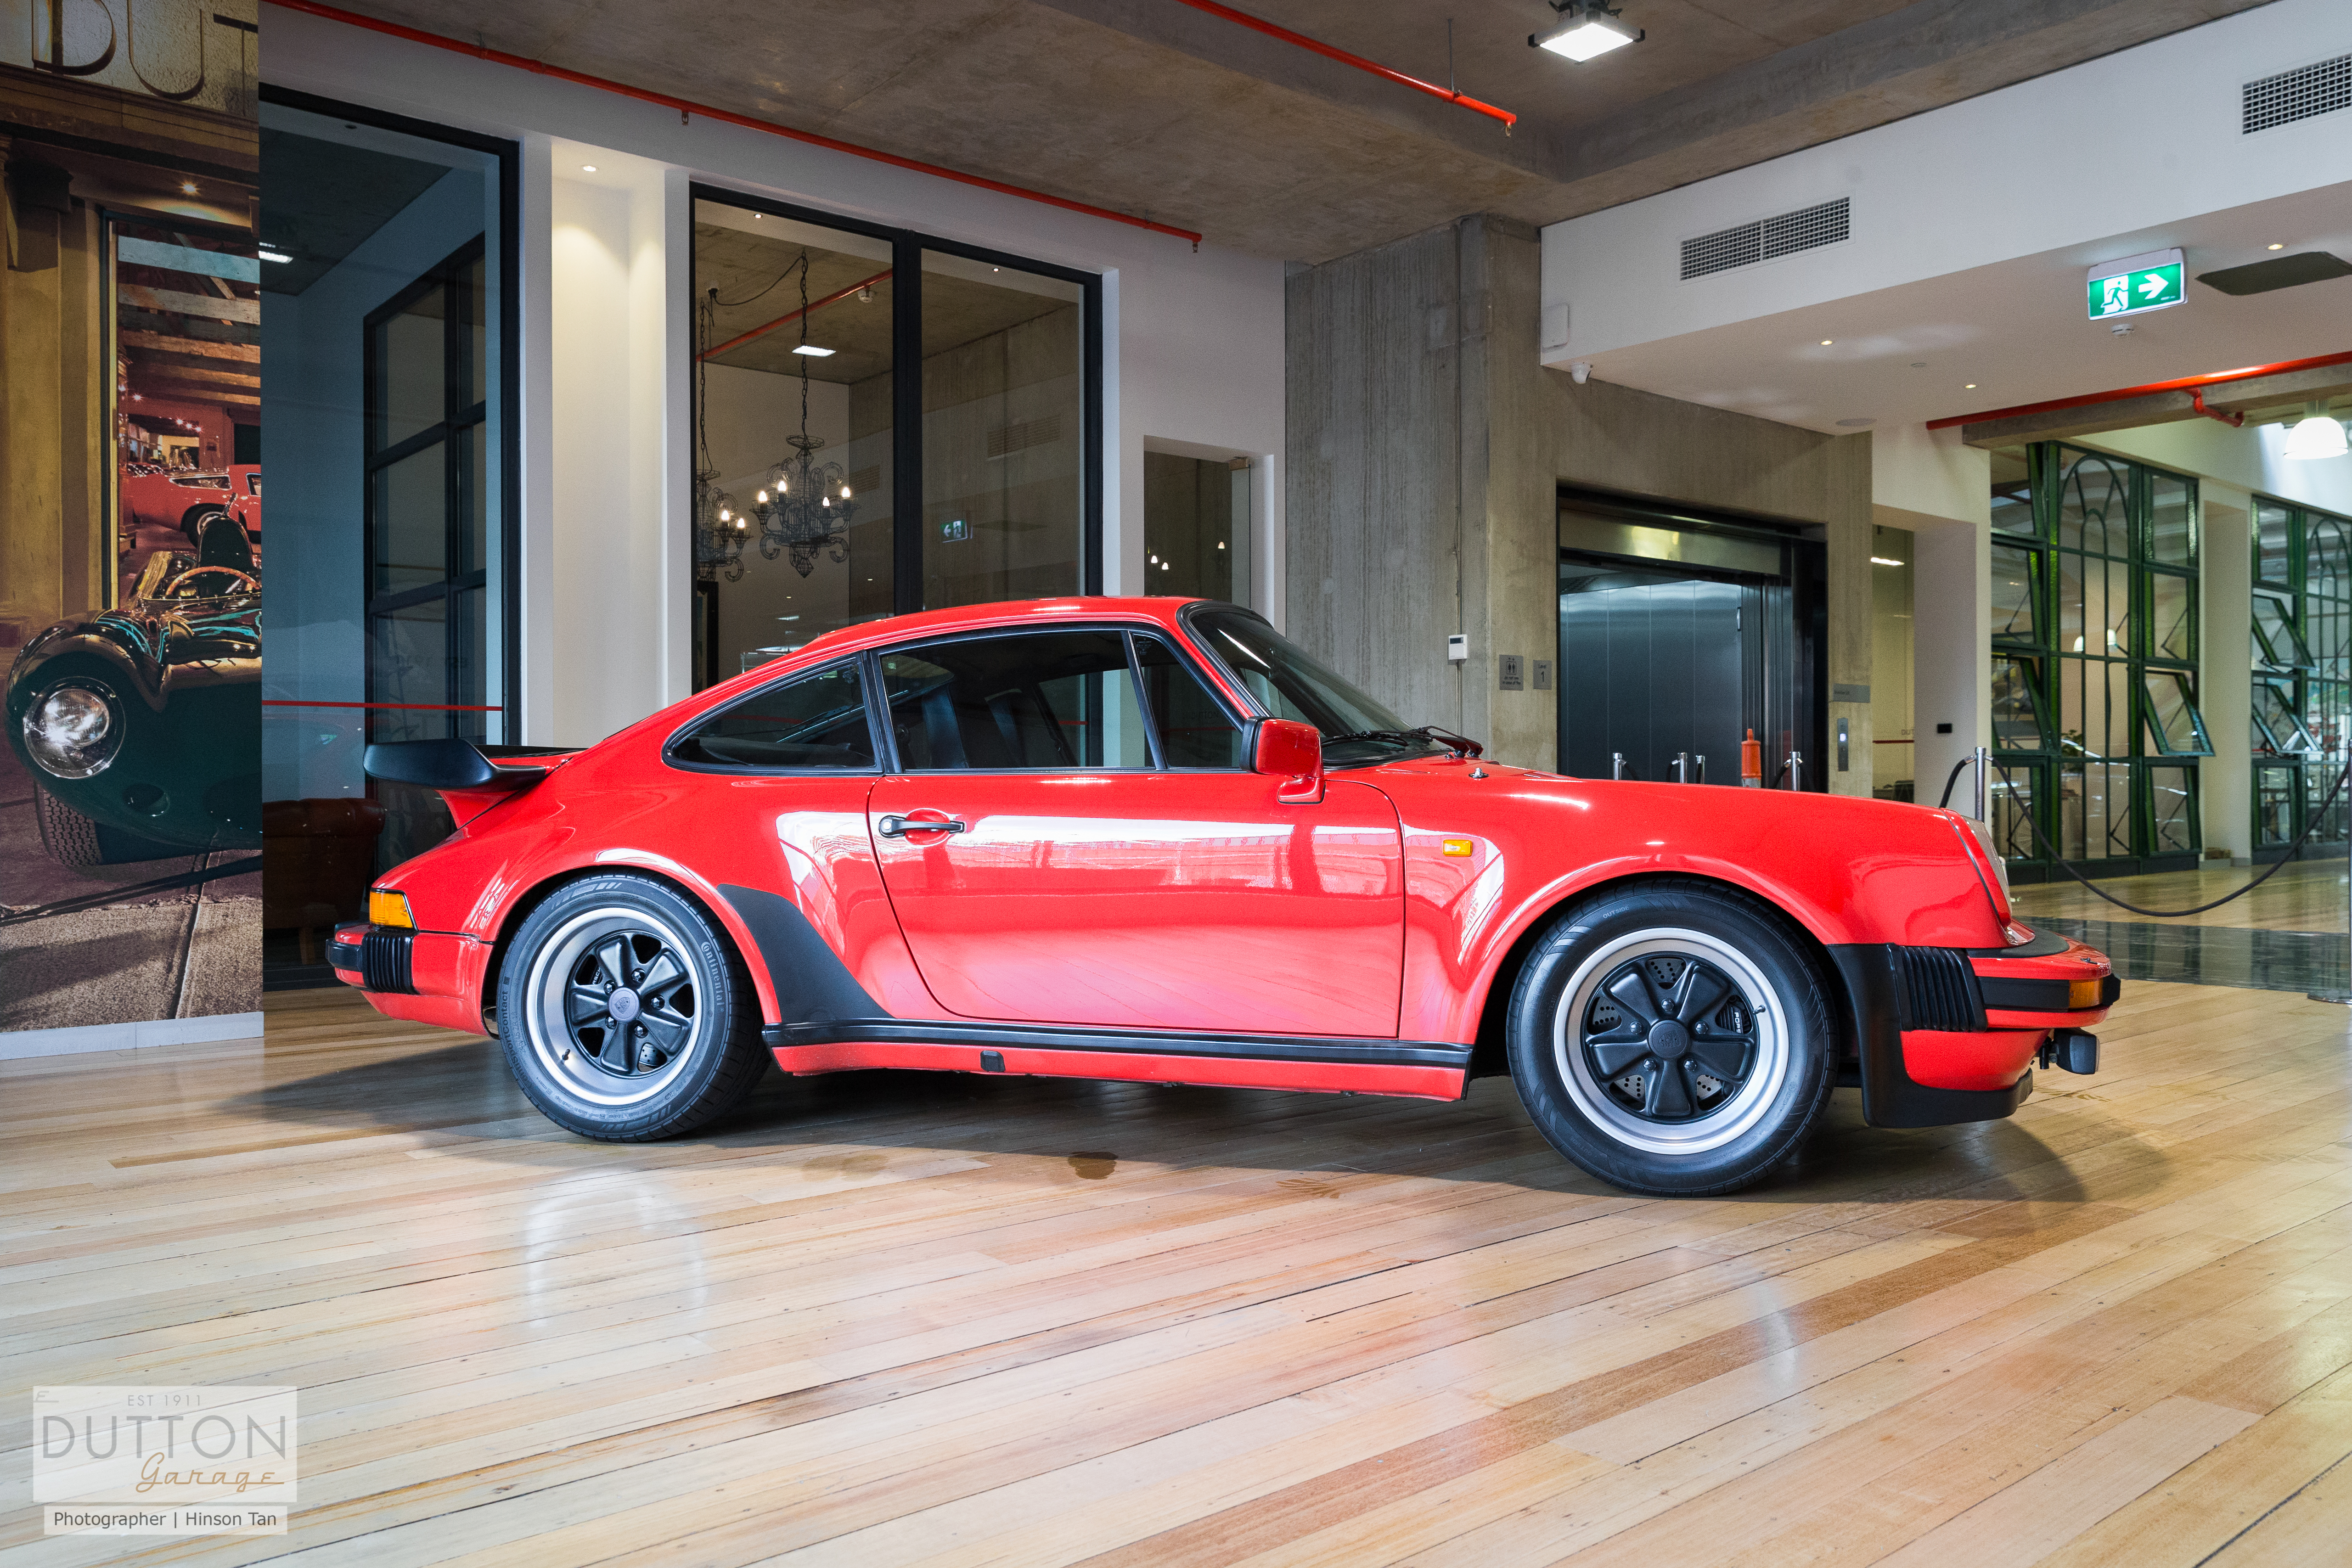 1982 Porsche 911 930 Turbo- sold in Australia